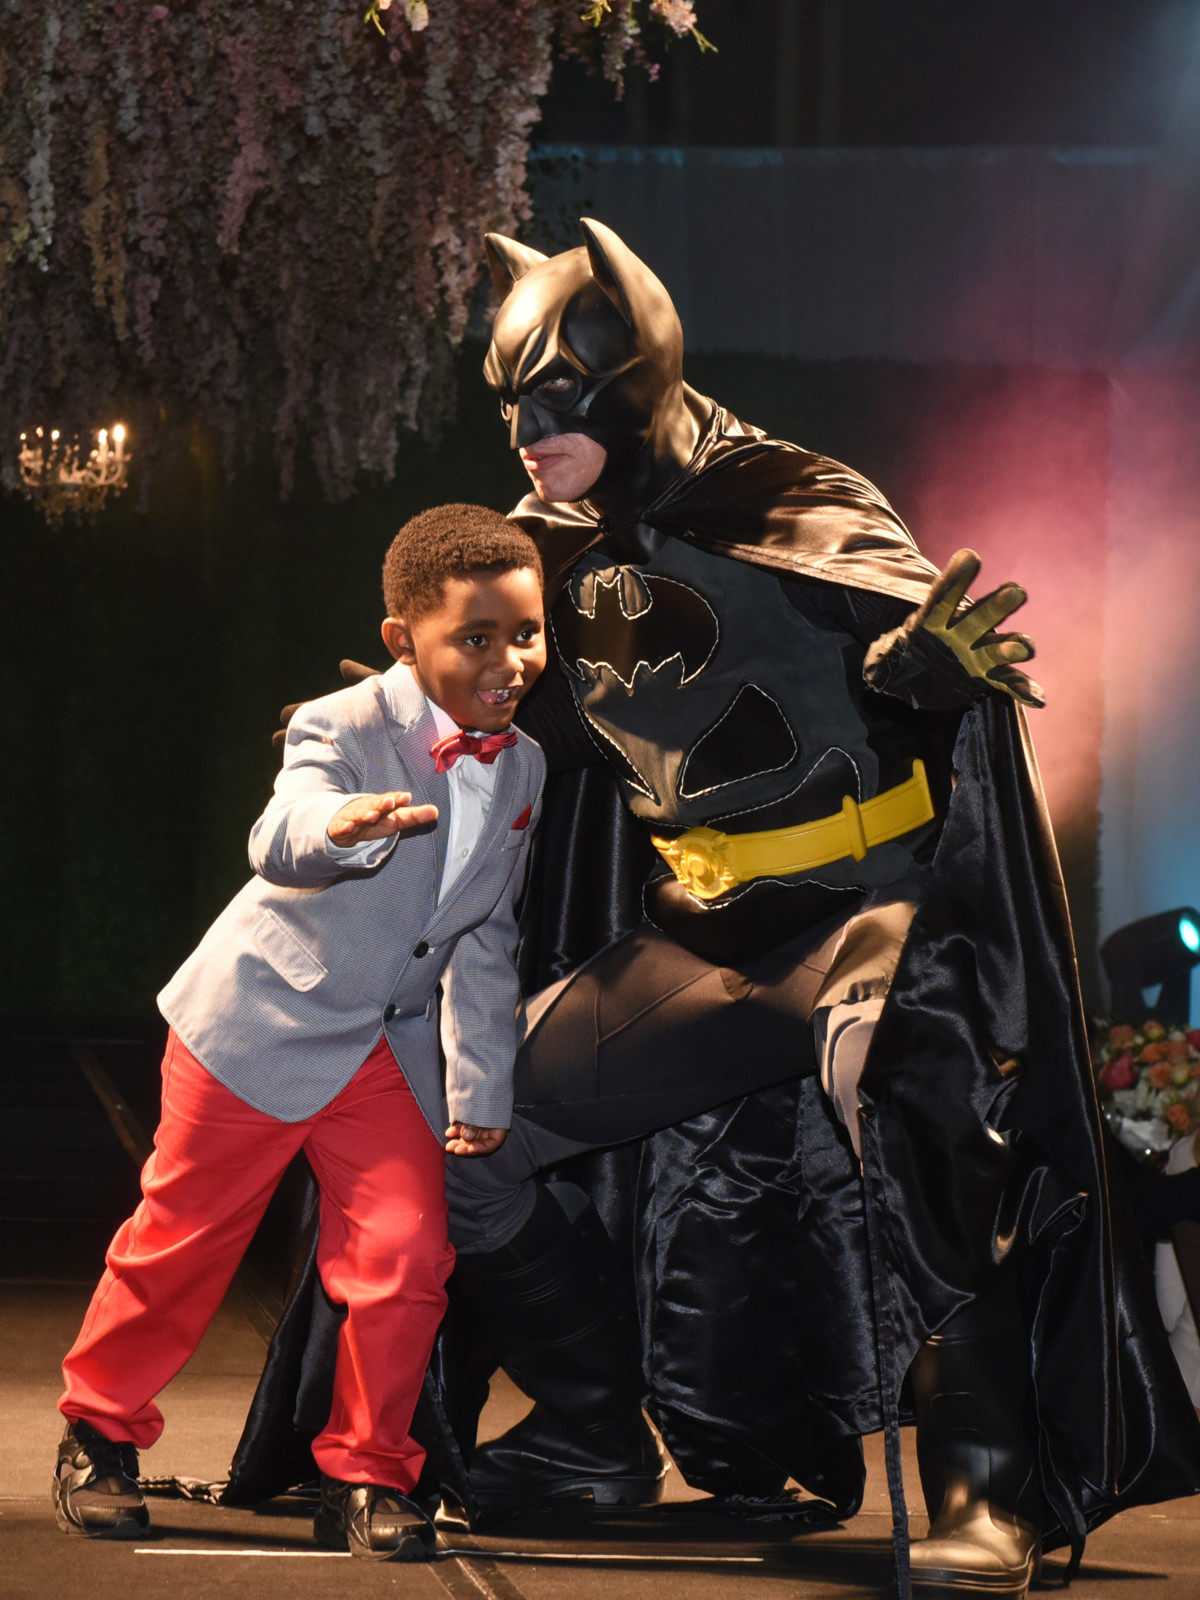 Antoine Wilkerson, 5, of Pittsburg: Batman